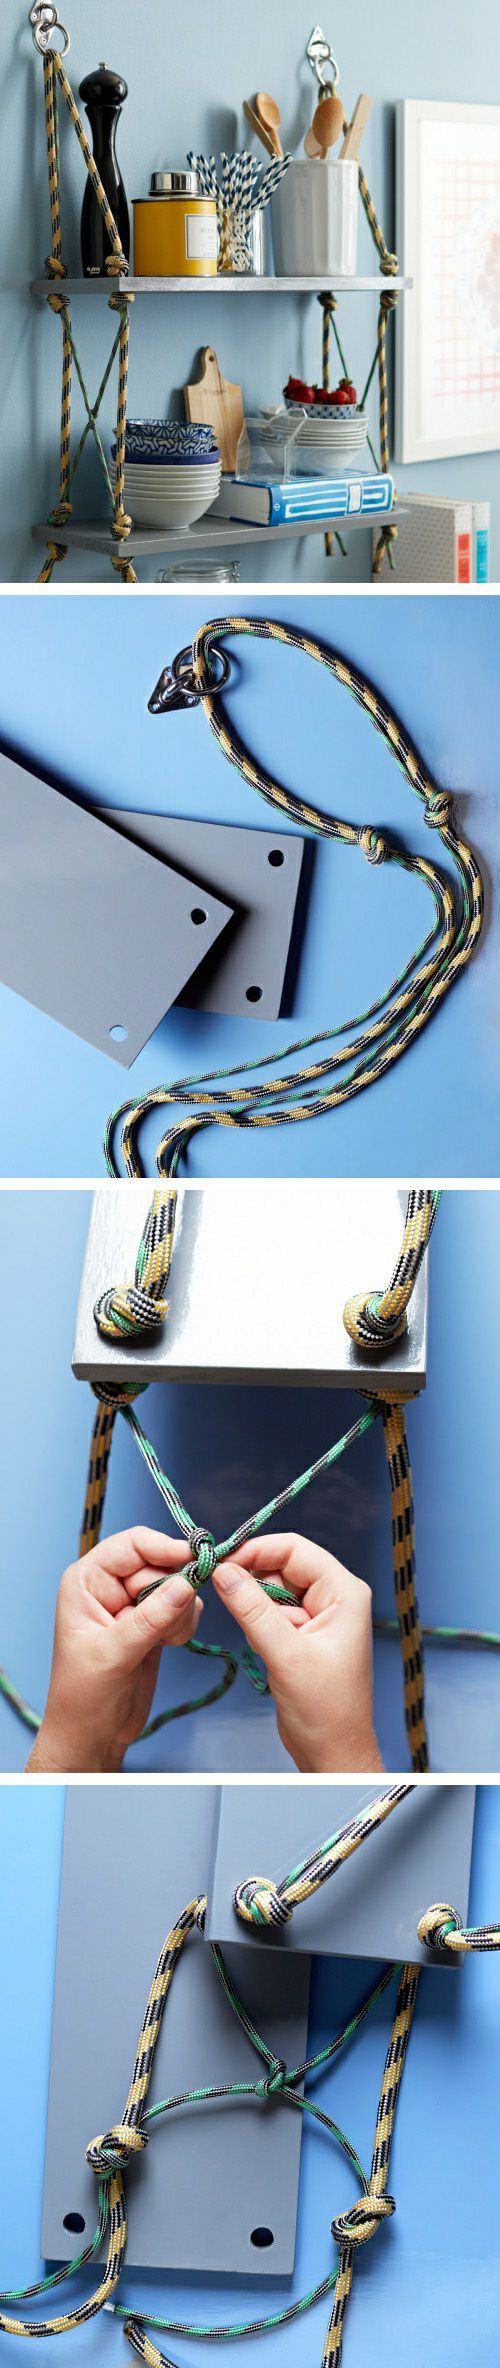 DIY a simple bookshelf by ropes.......